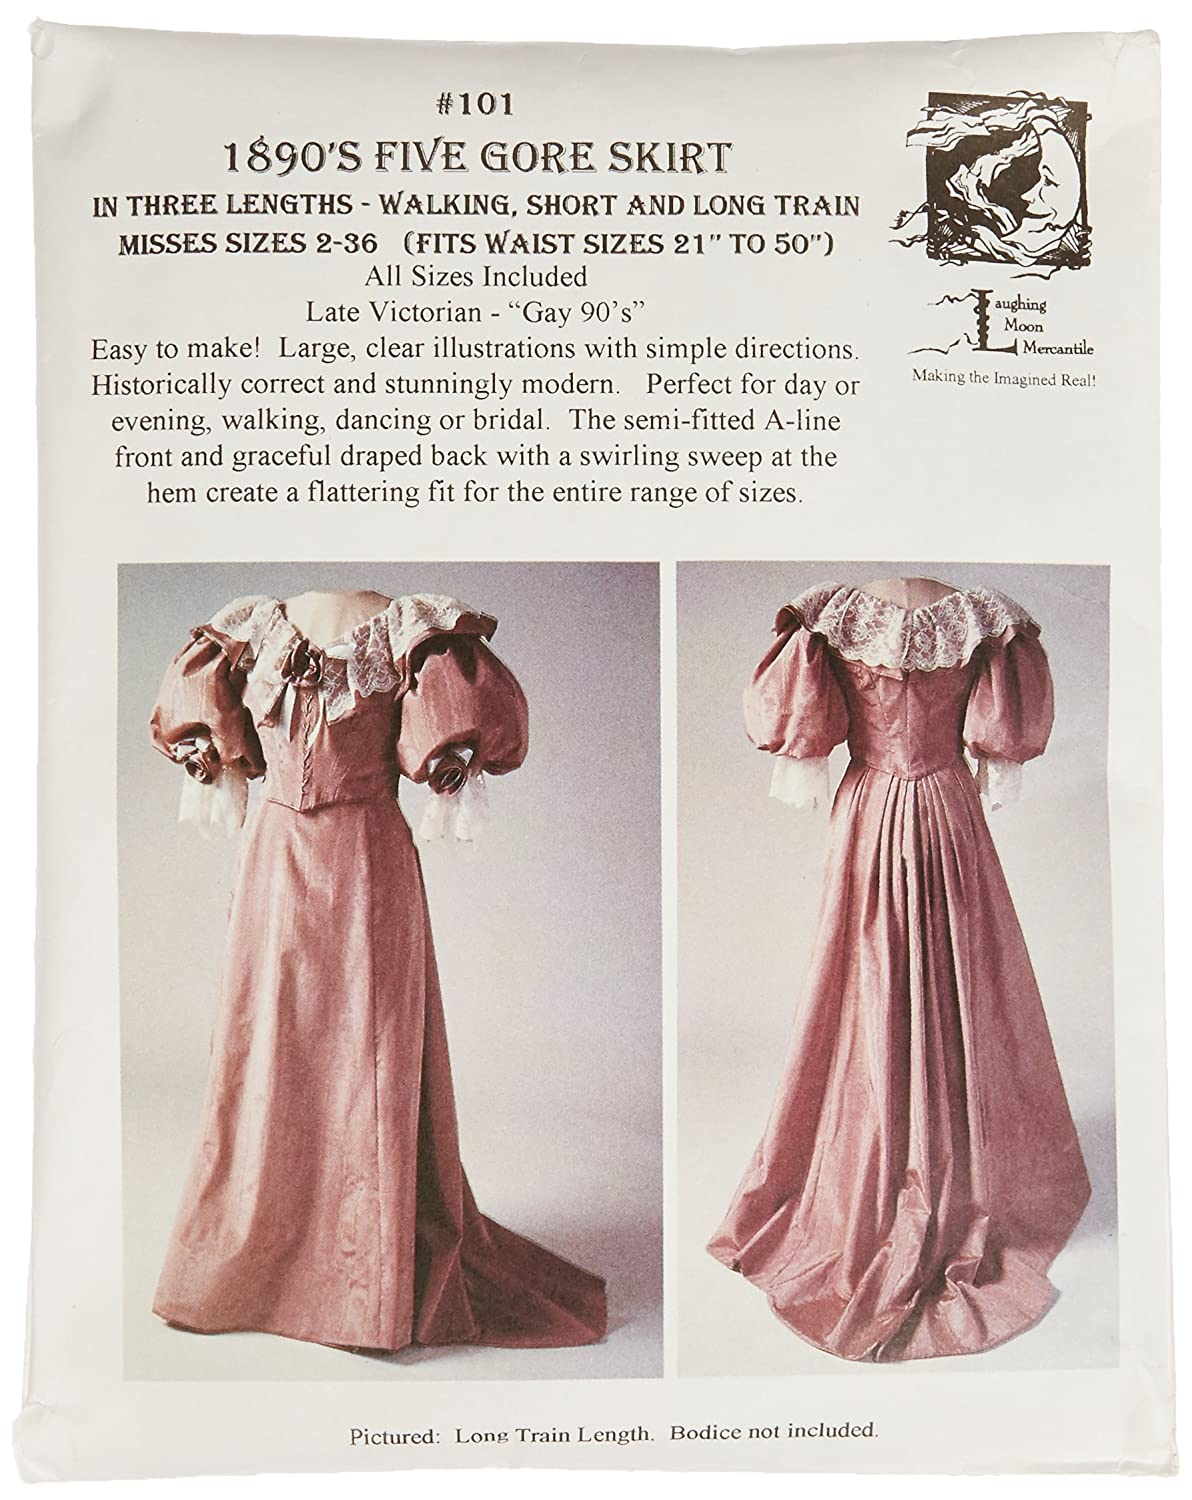 Laughing Moon Mercantile Victorian skirt pattern 1890